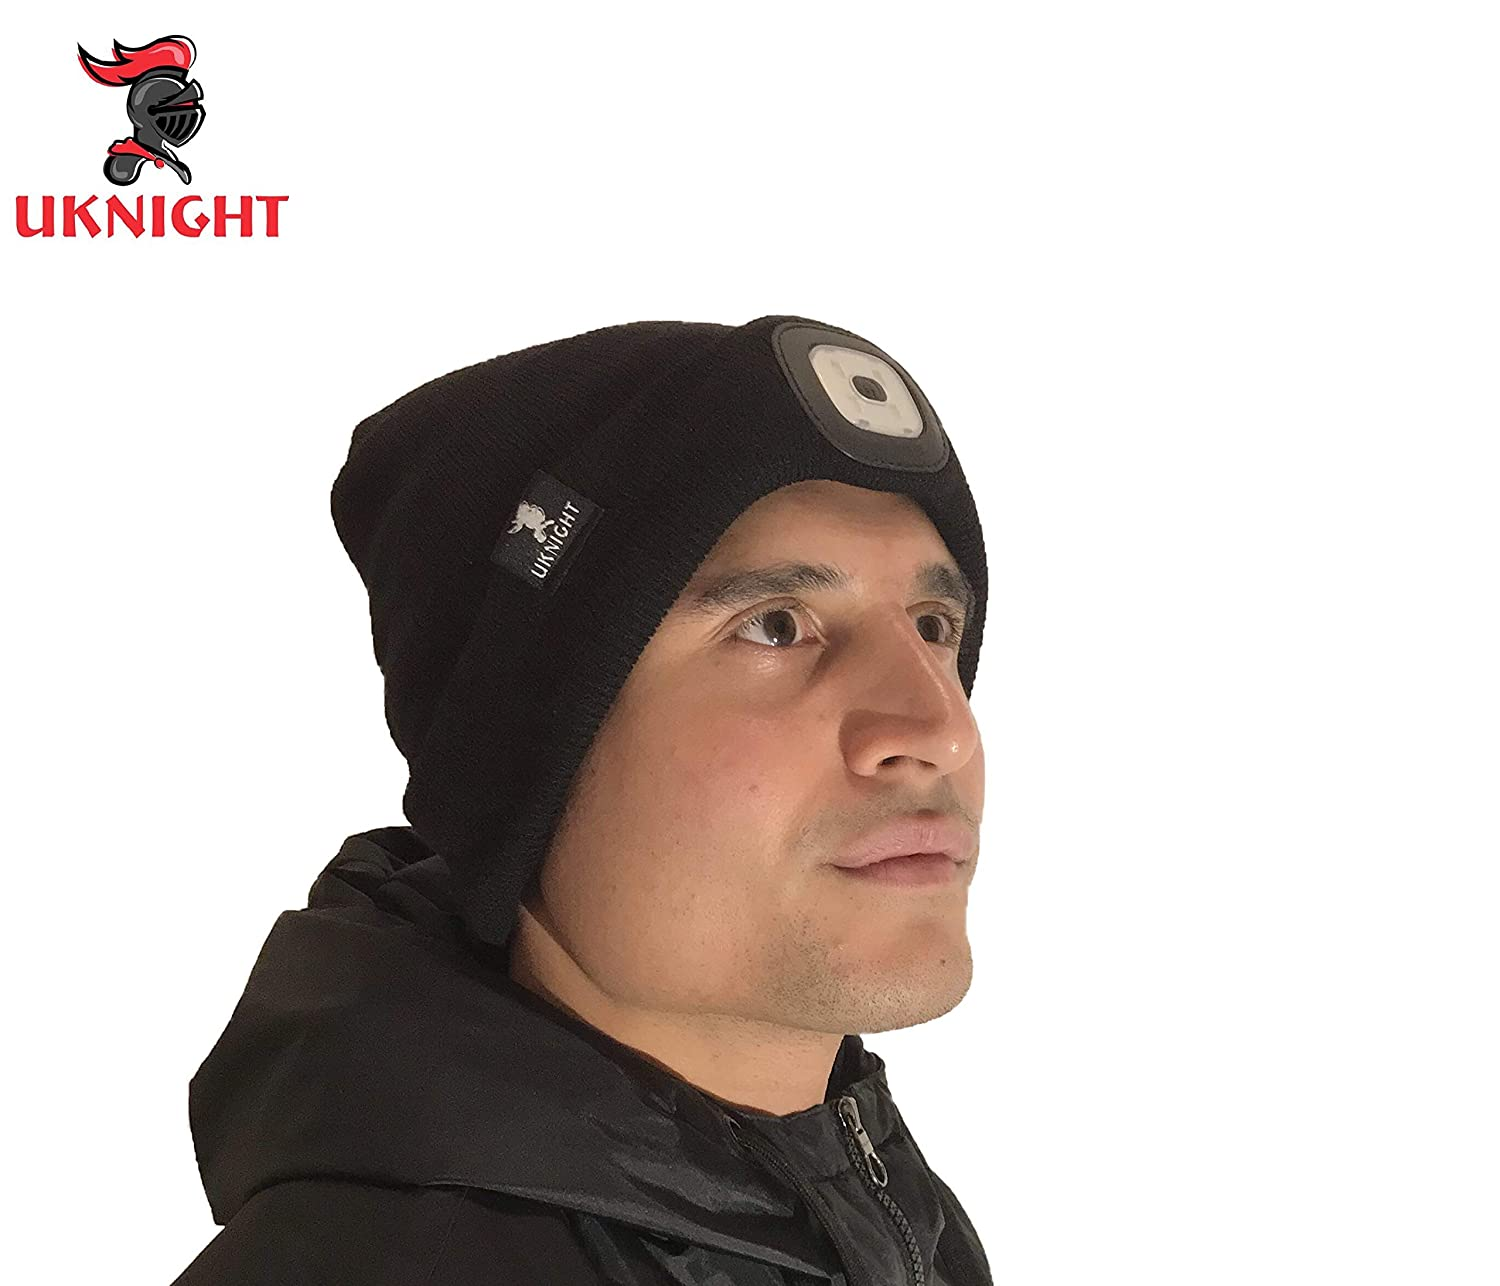 Uknight Premium Quality Black Beanie Hat with a Powerful LED Removeable and USB Rechargeable Light With 3 Brightness Levels.